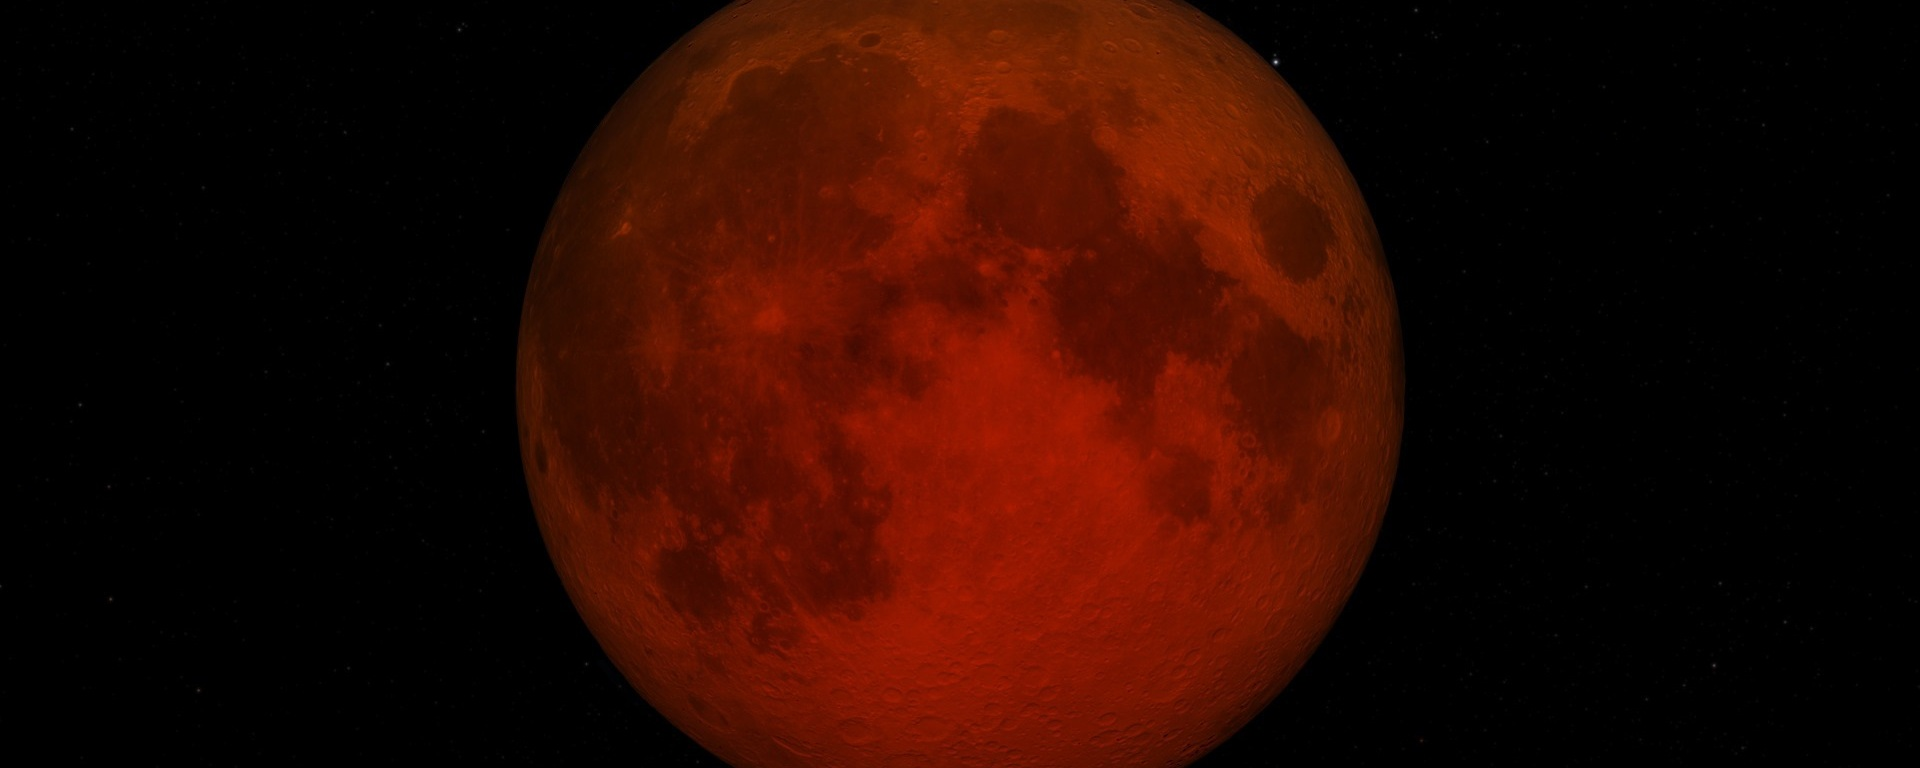 blood moon eclipse leo - photo #19